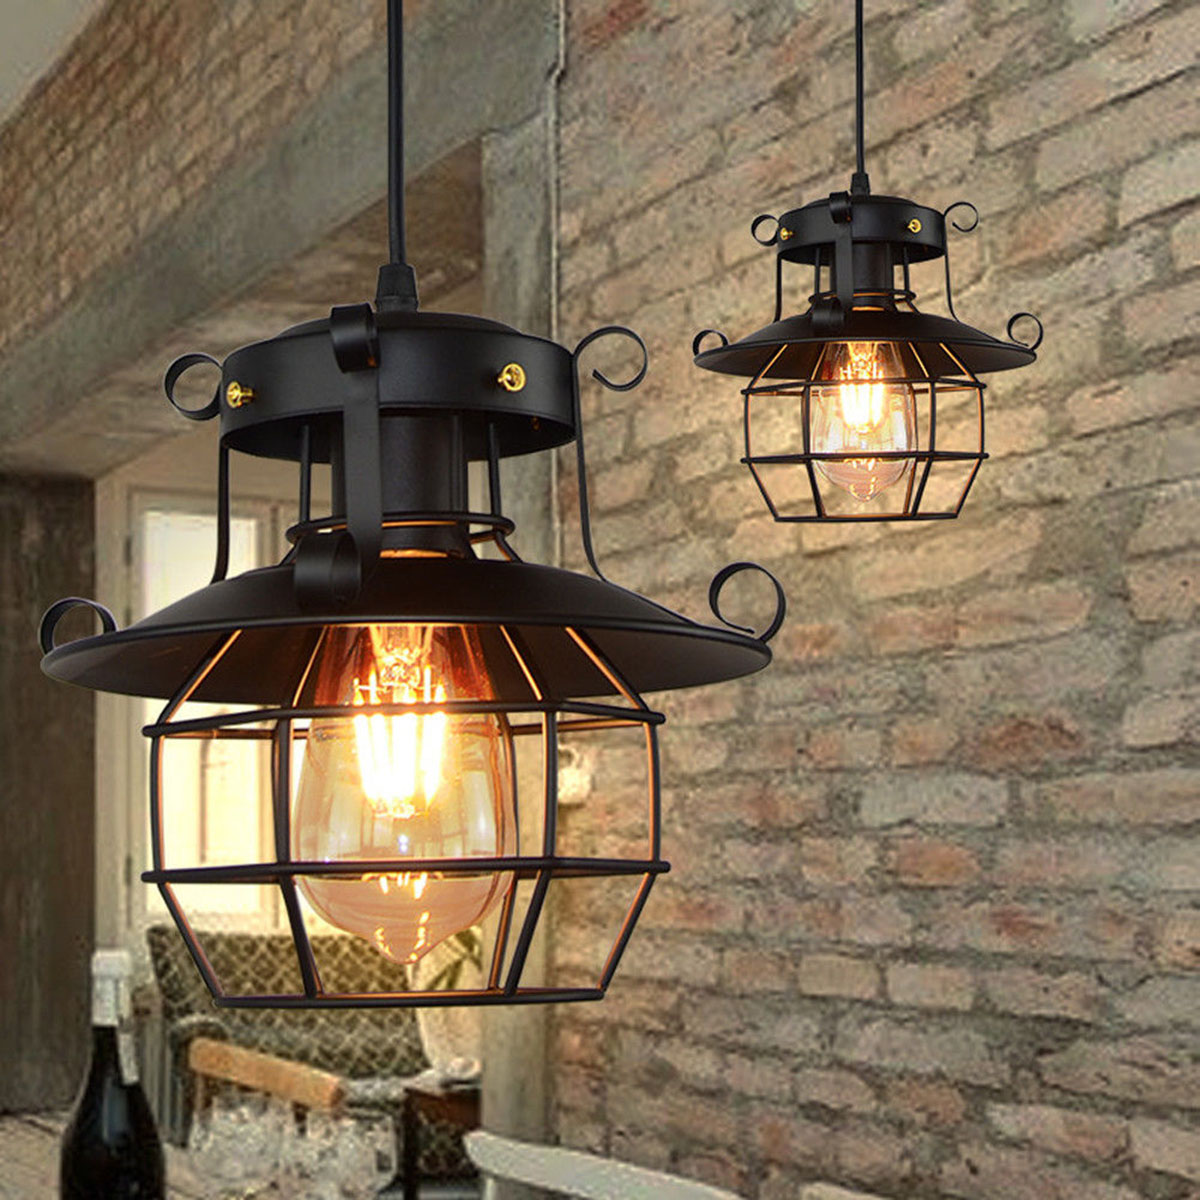 Vintage pendant light metal ceiling light chandelier industrial light fixtures cage edison nordic retro loft lamp home decor in pendant lights from lights